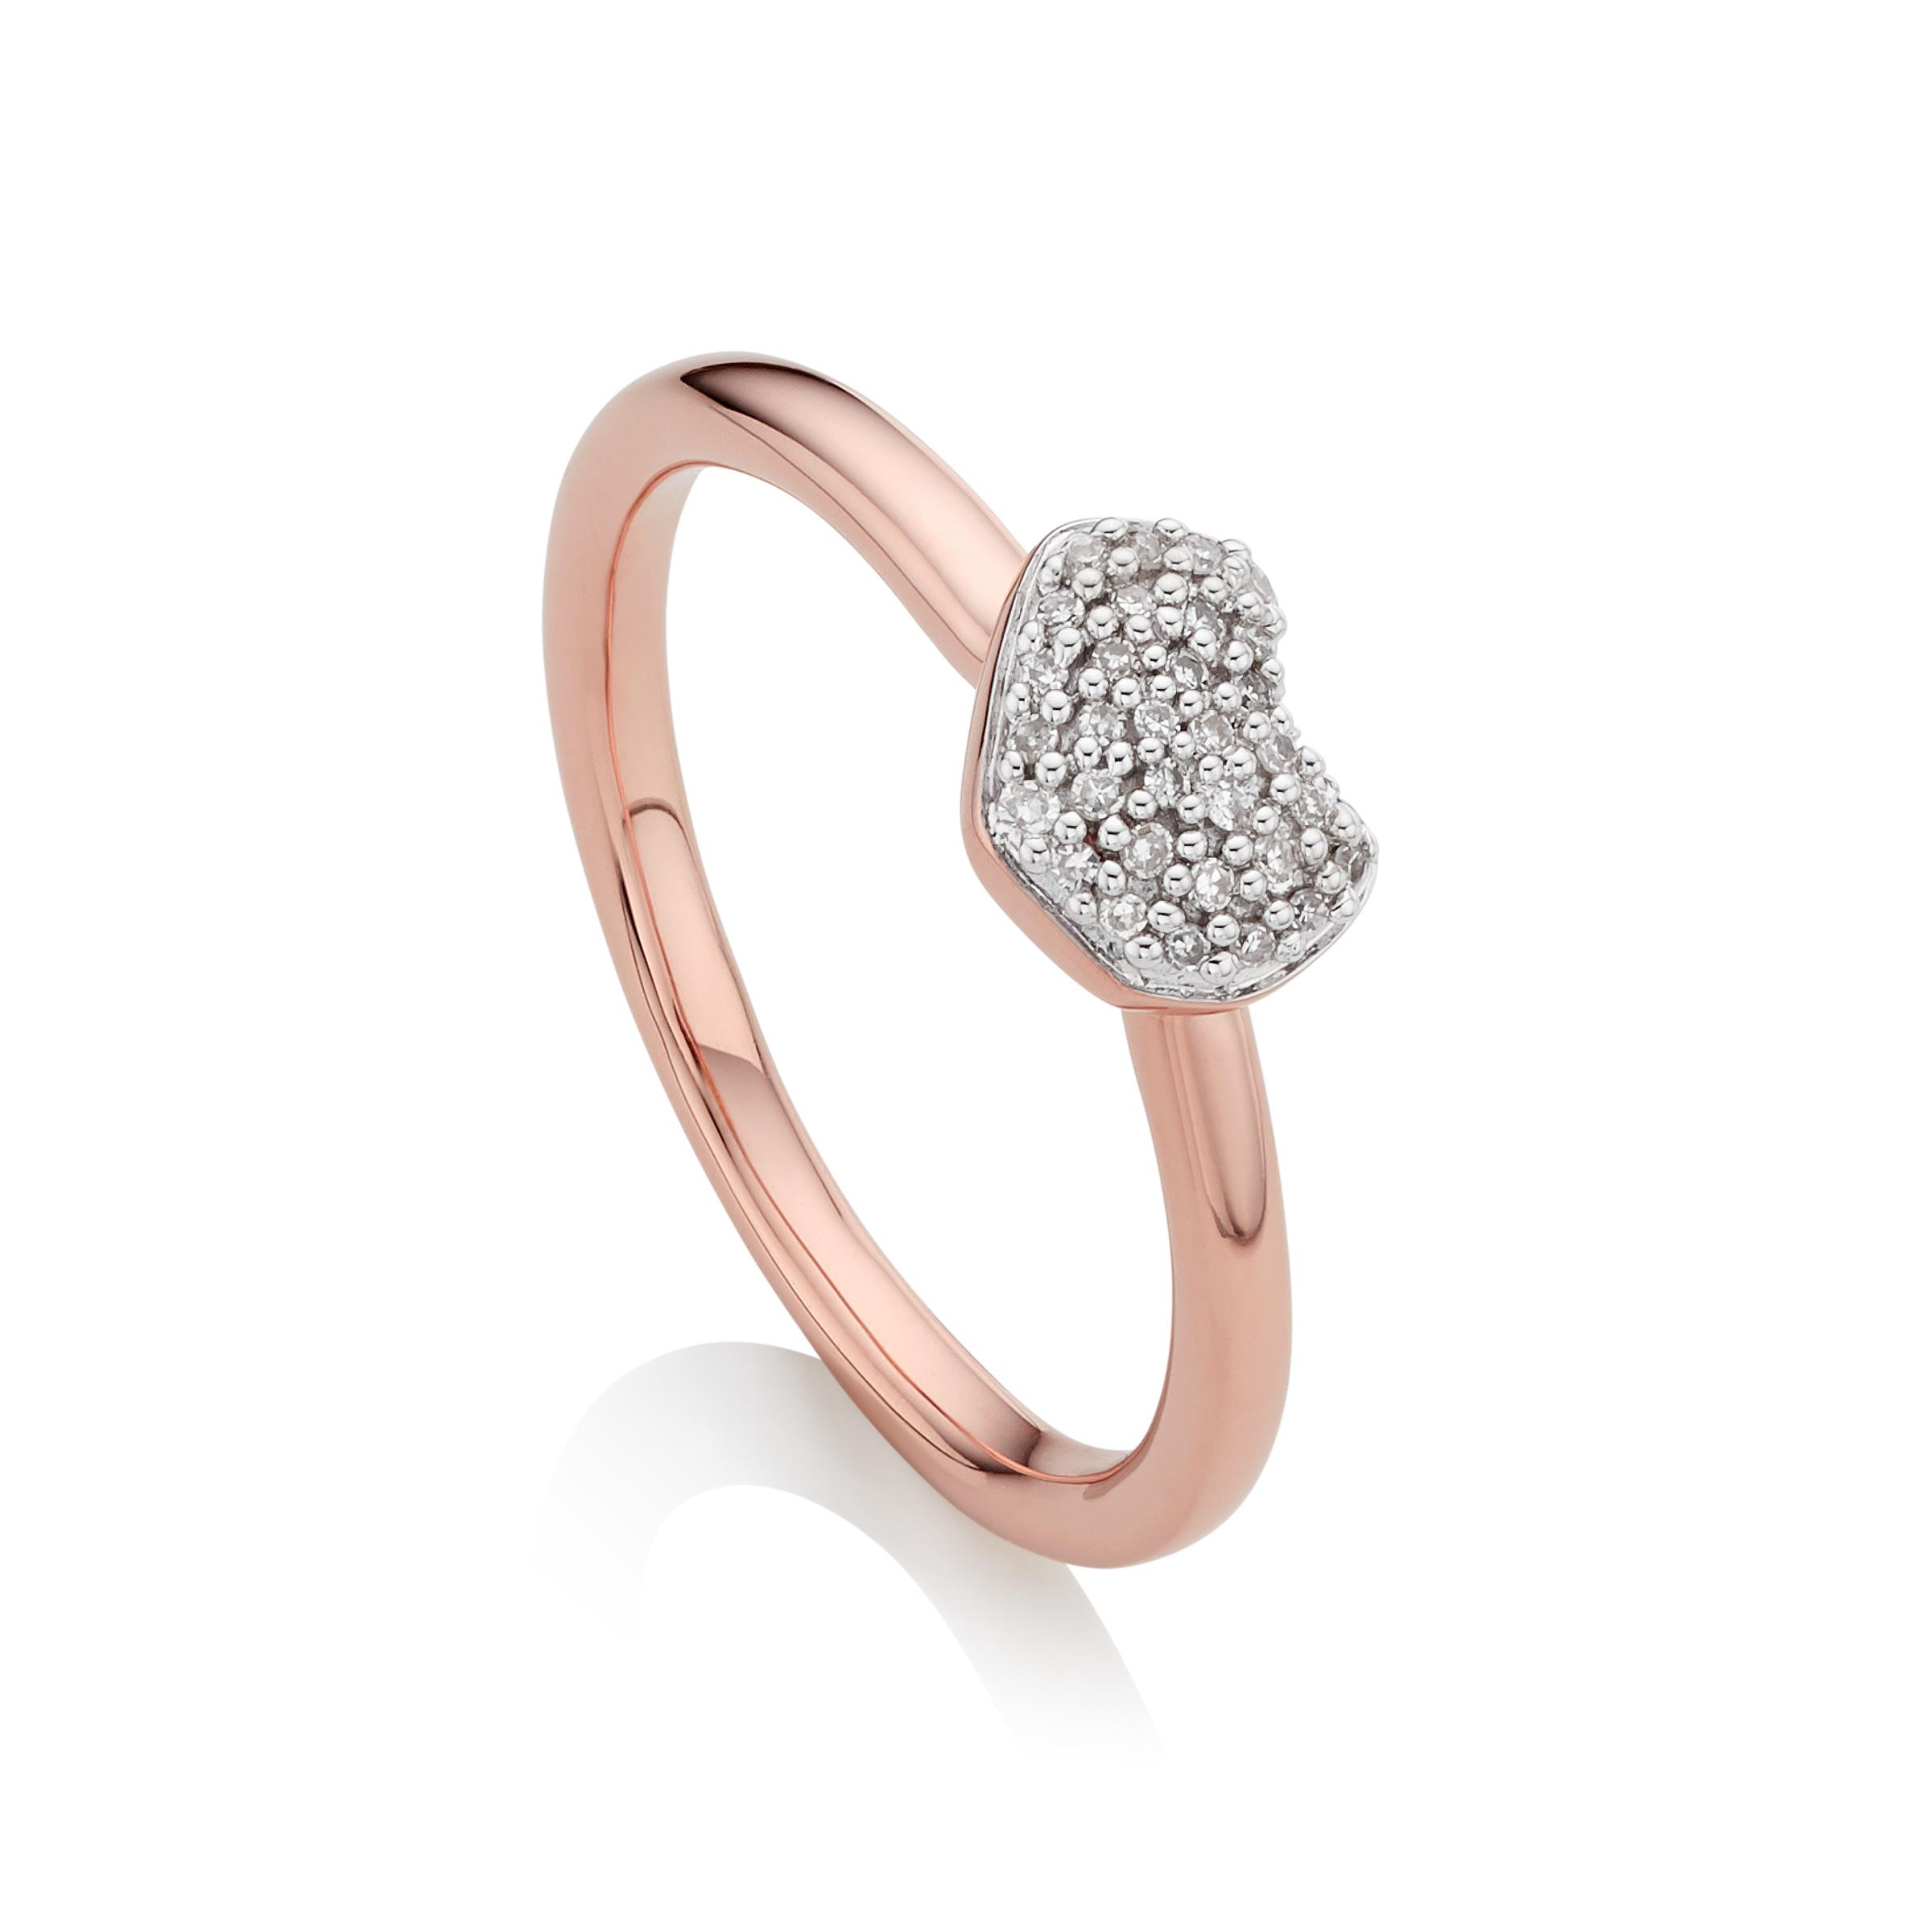 Rose Gold Nura Mini Heart Ring Diamond Monica Vinader GSDN1LXoB